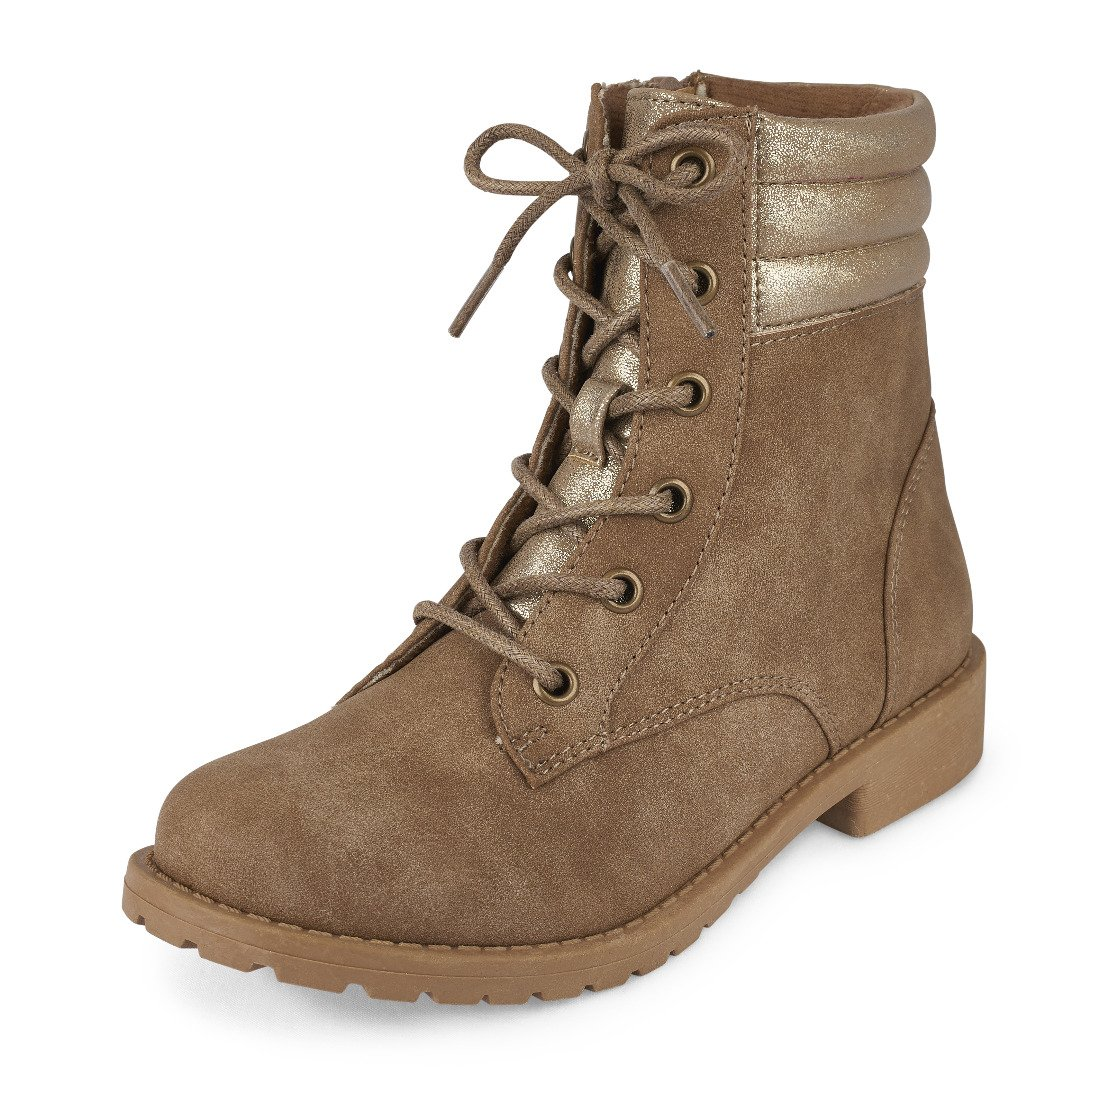 The Children's Place Girls' Combat Fashion Boot, Tan-Boot-6, Youth 3 M US Little Kid